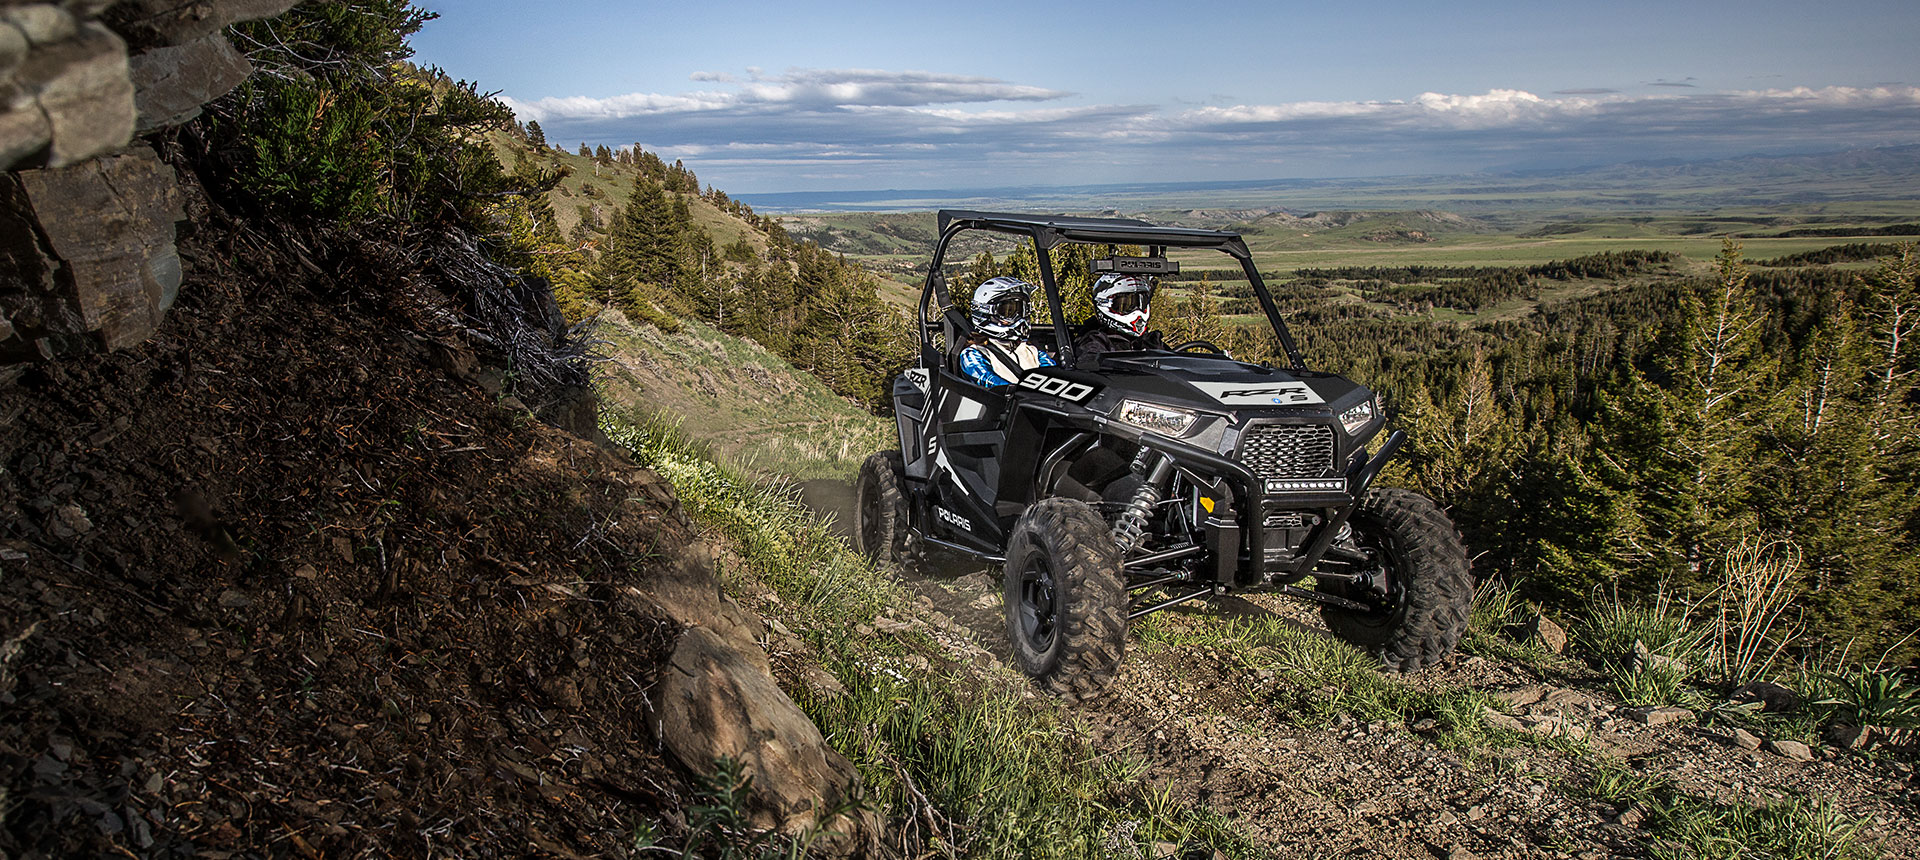 2019 Polaris RZR S 900 EPS in Bessemer, Alabama